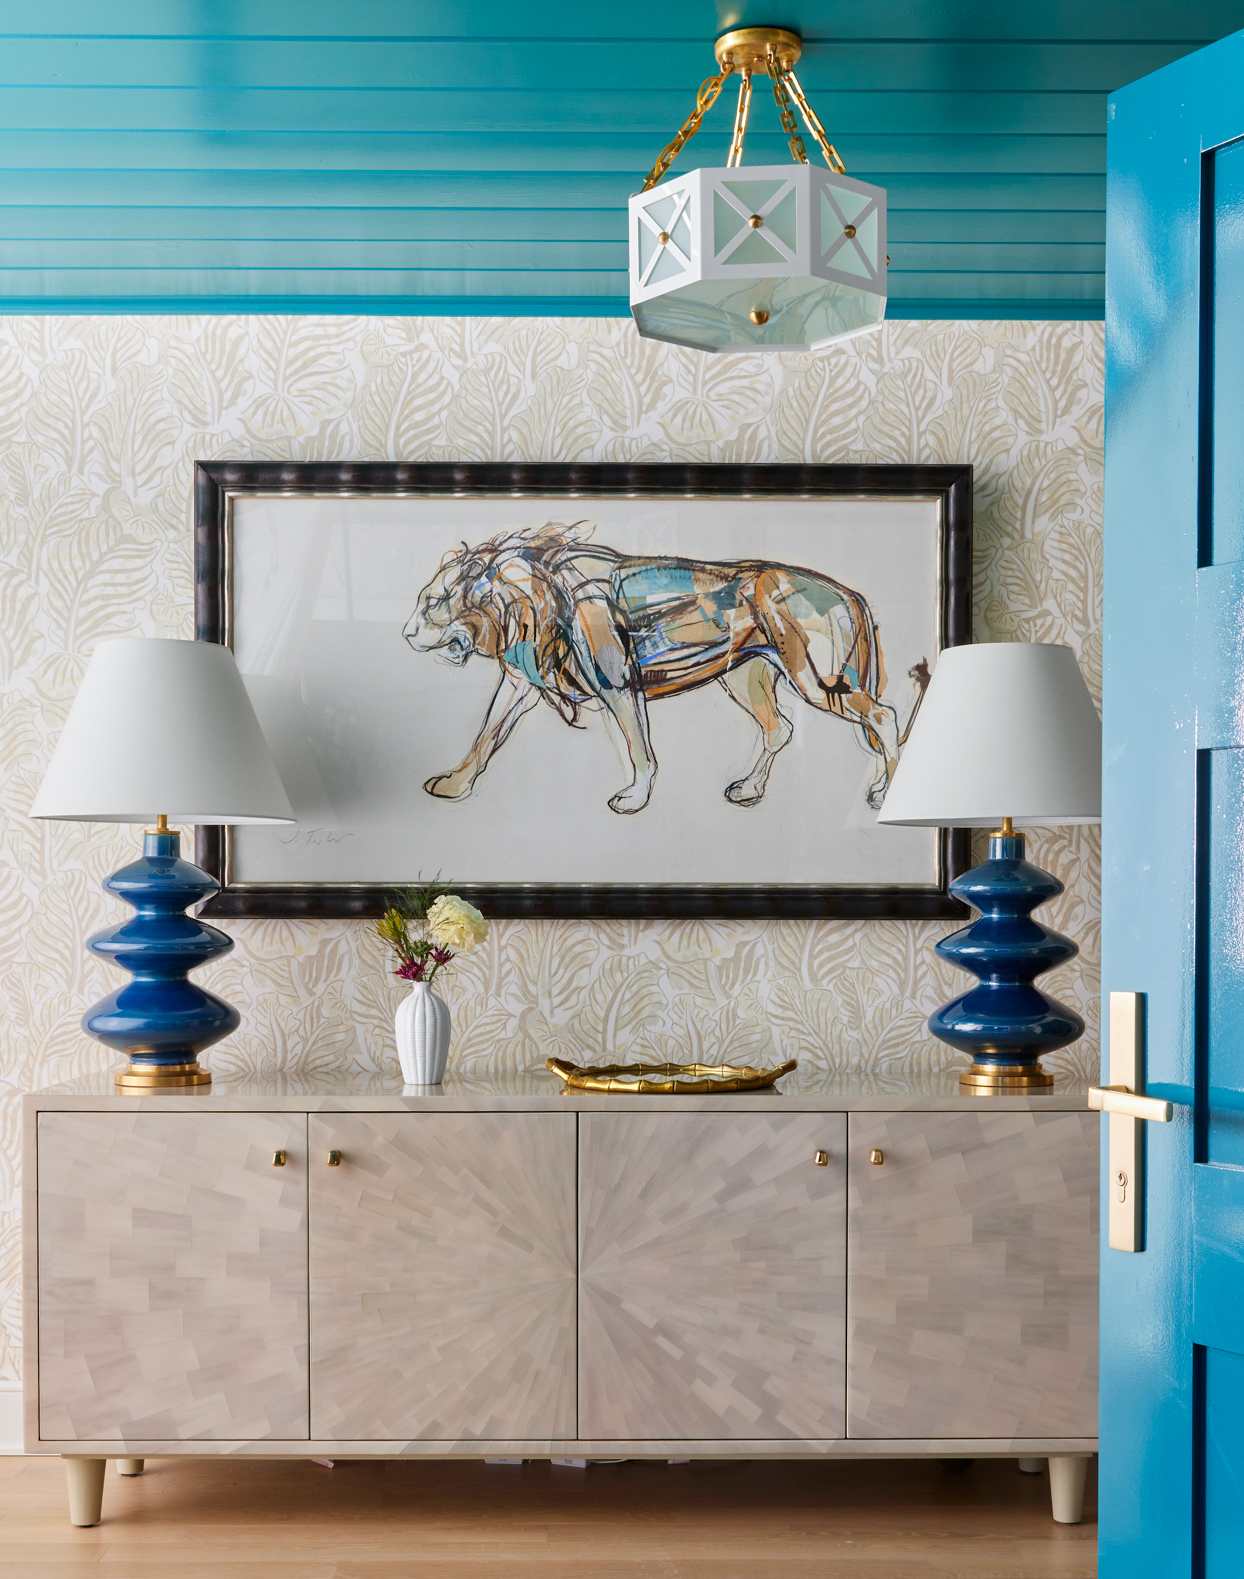 entryway with blue door teal lamps abstract lion artwork credenza